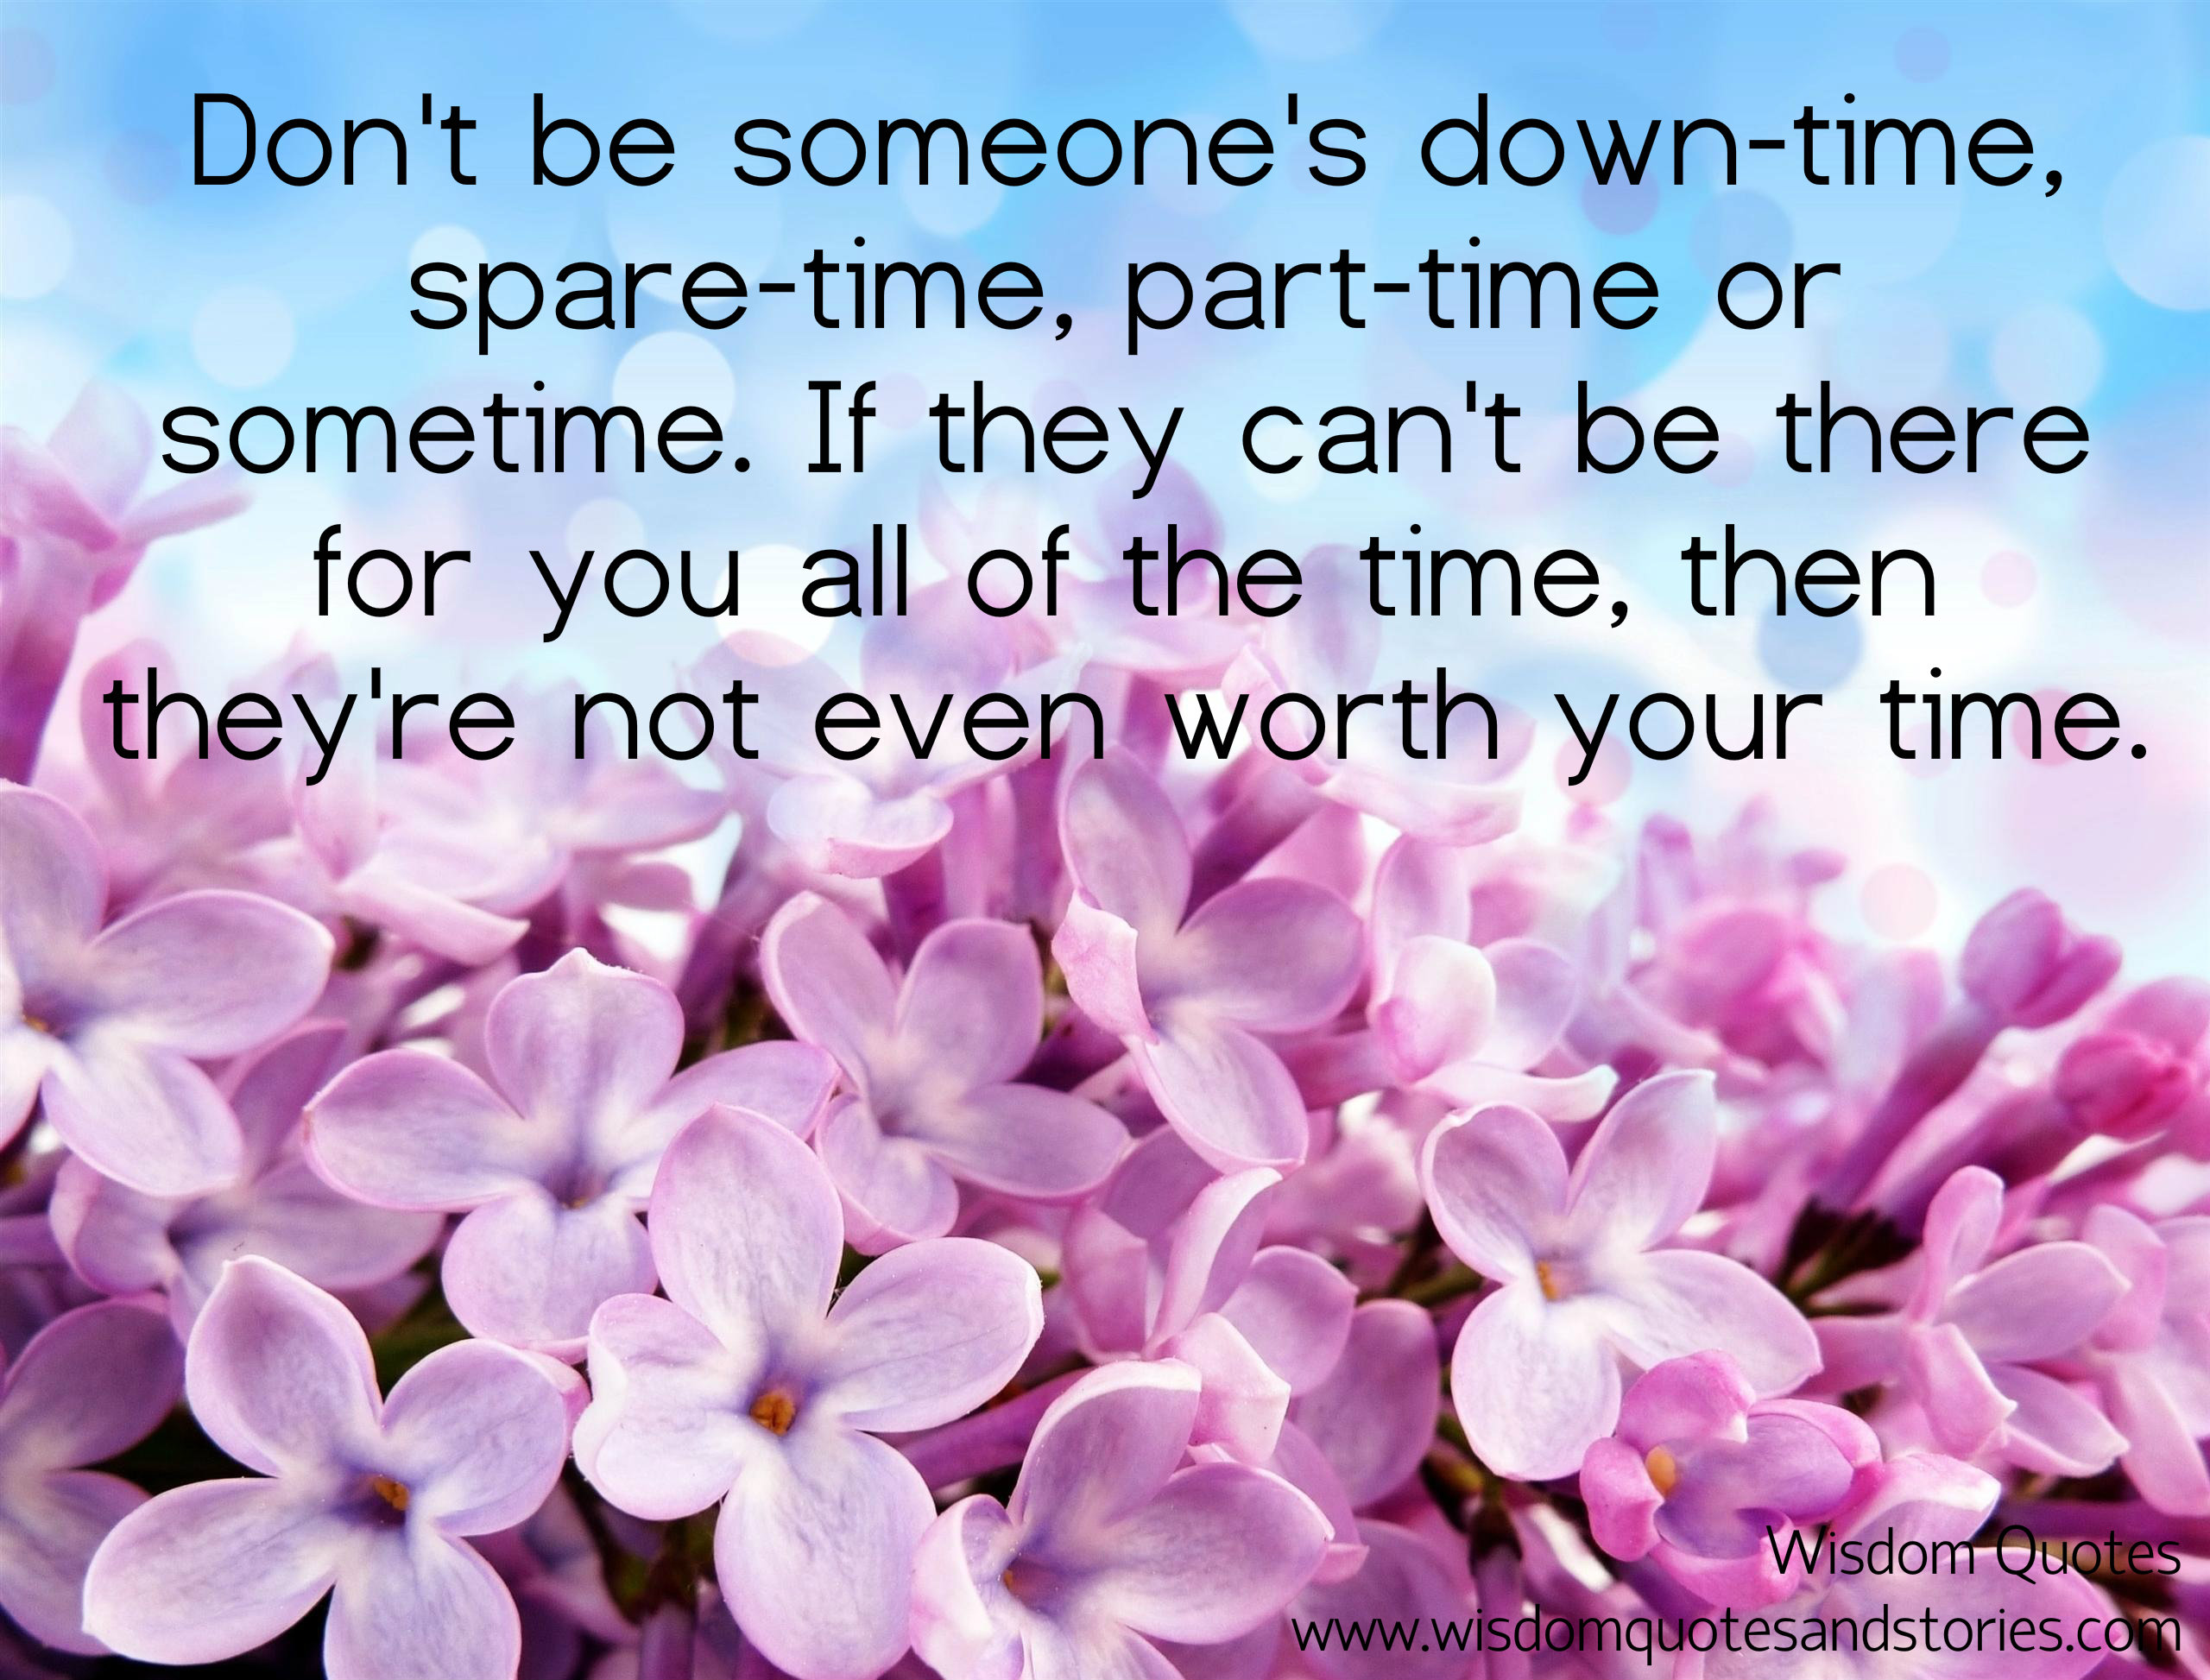 If Someone Can T Be There For You All The Time Then They Re Not Worth Your Time